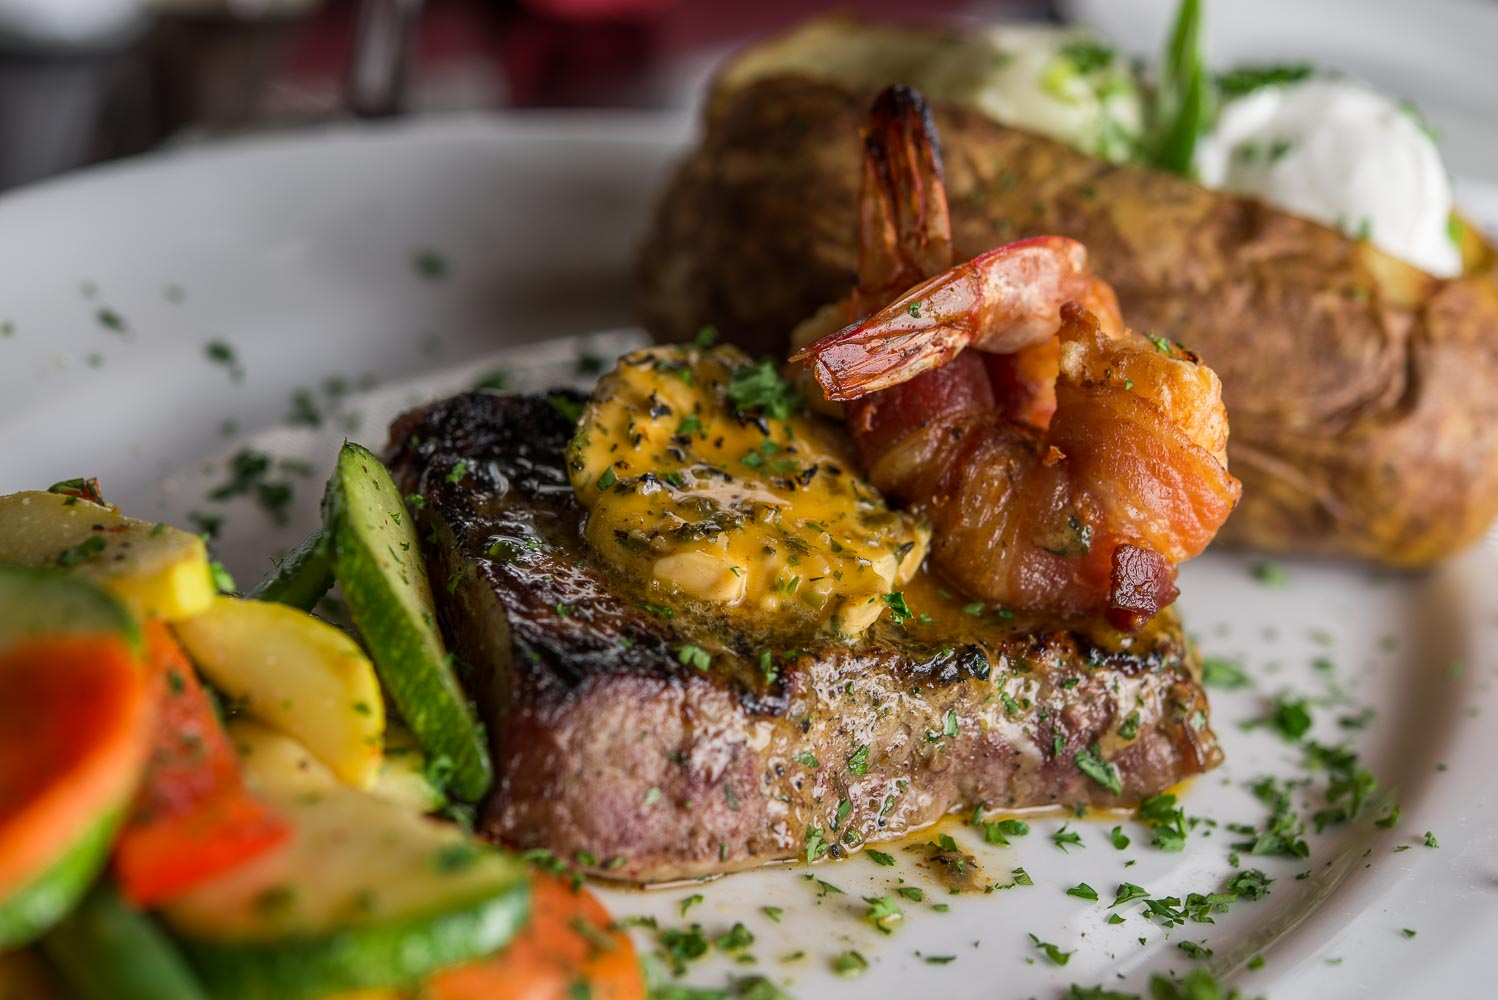 Wrought Iron Grill Food & Beverage Photography